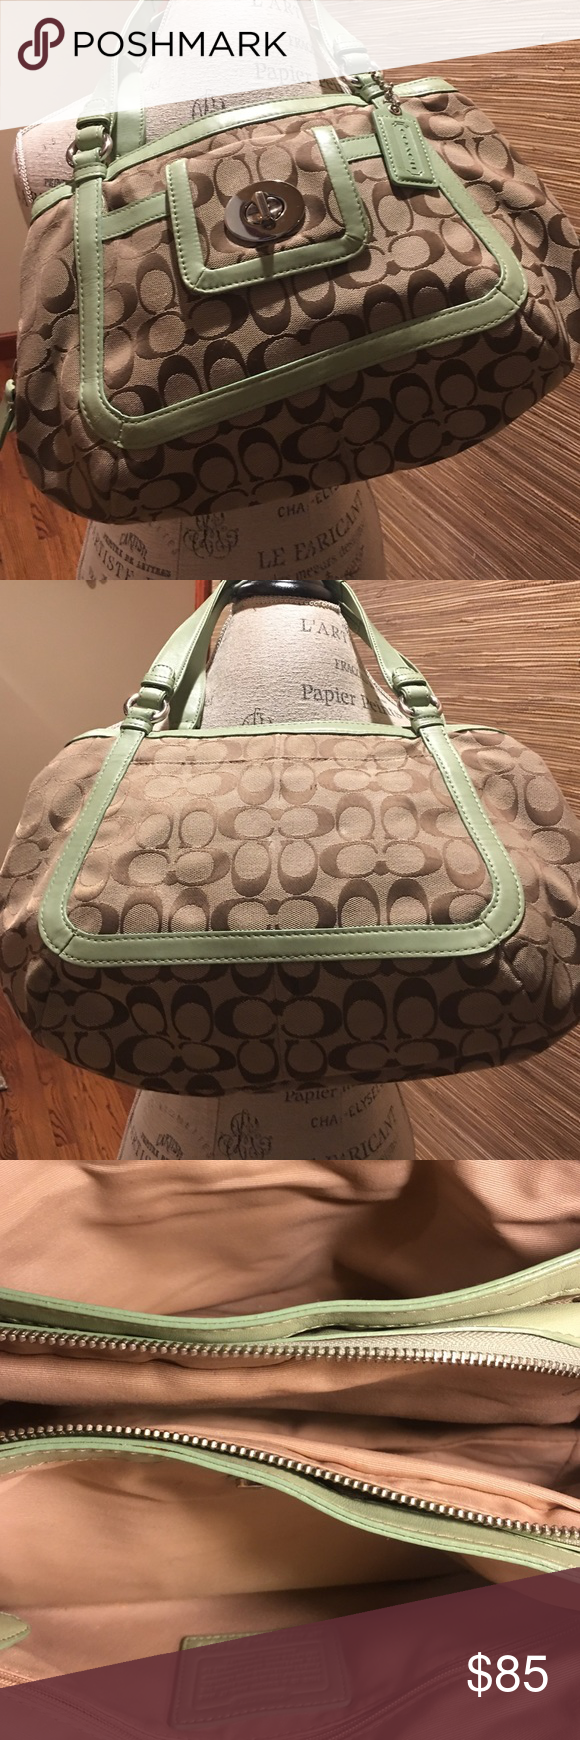 "Gorgeous Coach Purse❤️ This bag is a favorite from my Coach collection. I love the pale, soft green trim against the classic Coach CC fabric. Beautiful brass accent. Bag is in impeccable condition! Approx 15"" across x 9"" . Coach Bags Shoulder Bags"